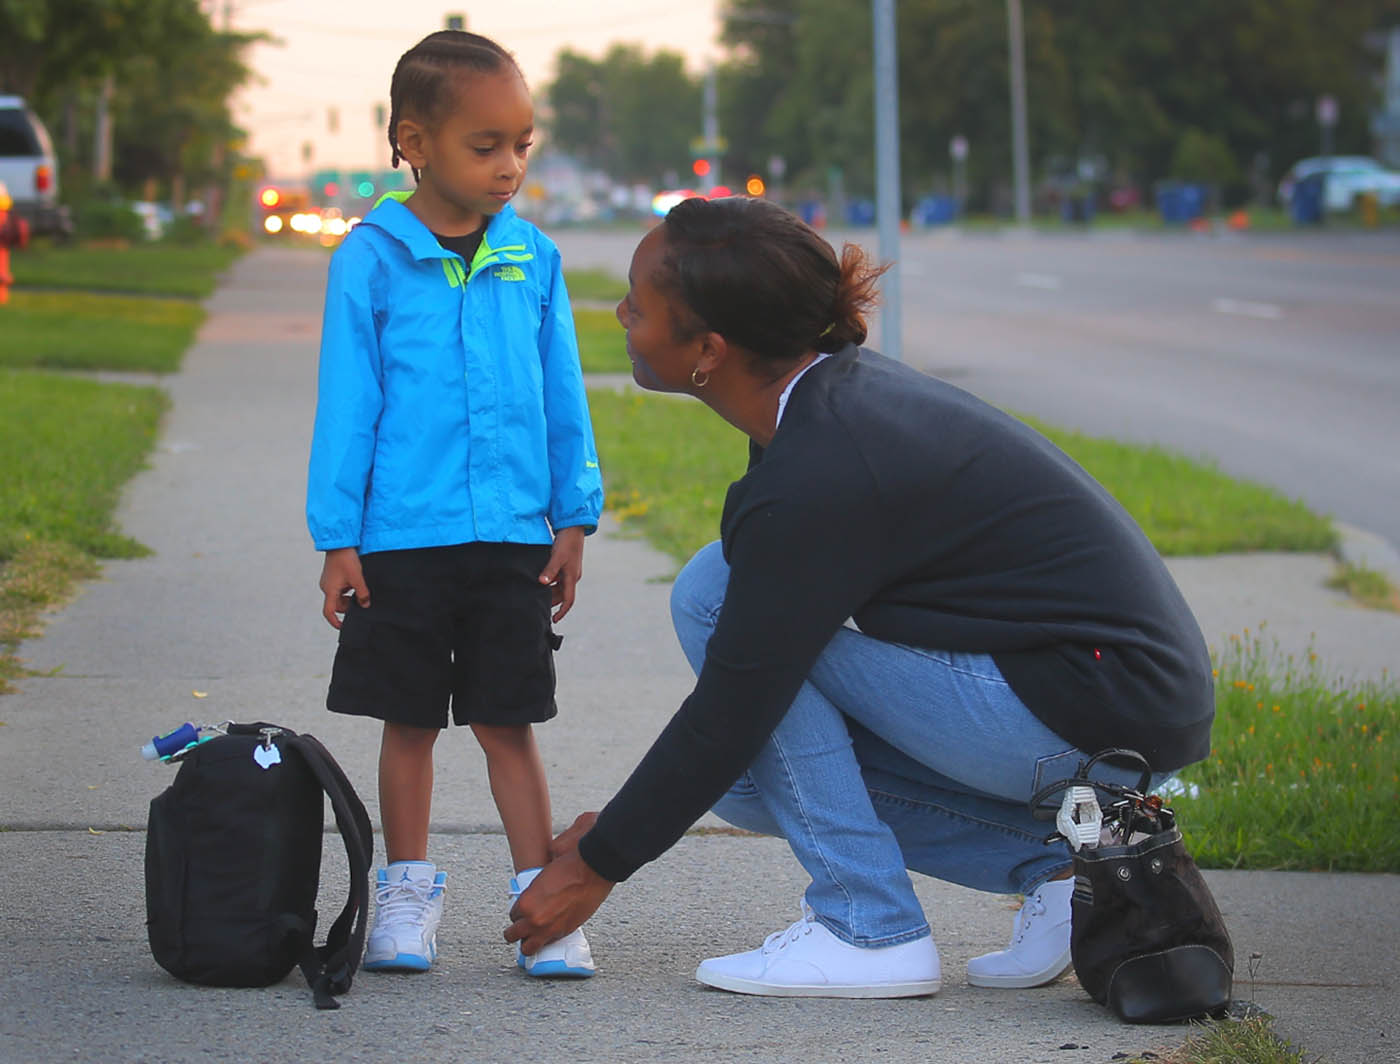 Natavia Siders, right, of Amherst, ties her sons shoe Namarien, 3, as they wait for the bus as Namarien heads to his first day of pre-k on the first day of school at the bus stop on Niagara Falls Blvd. in Town of Tonawanda, N.Y. on Tuesday Sept. 6, 2016. (John Hickey/Buffalo News)